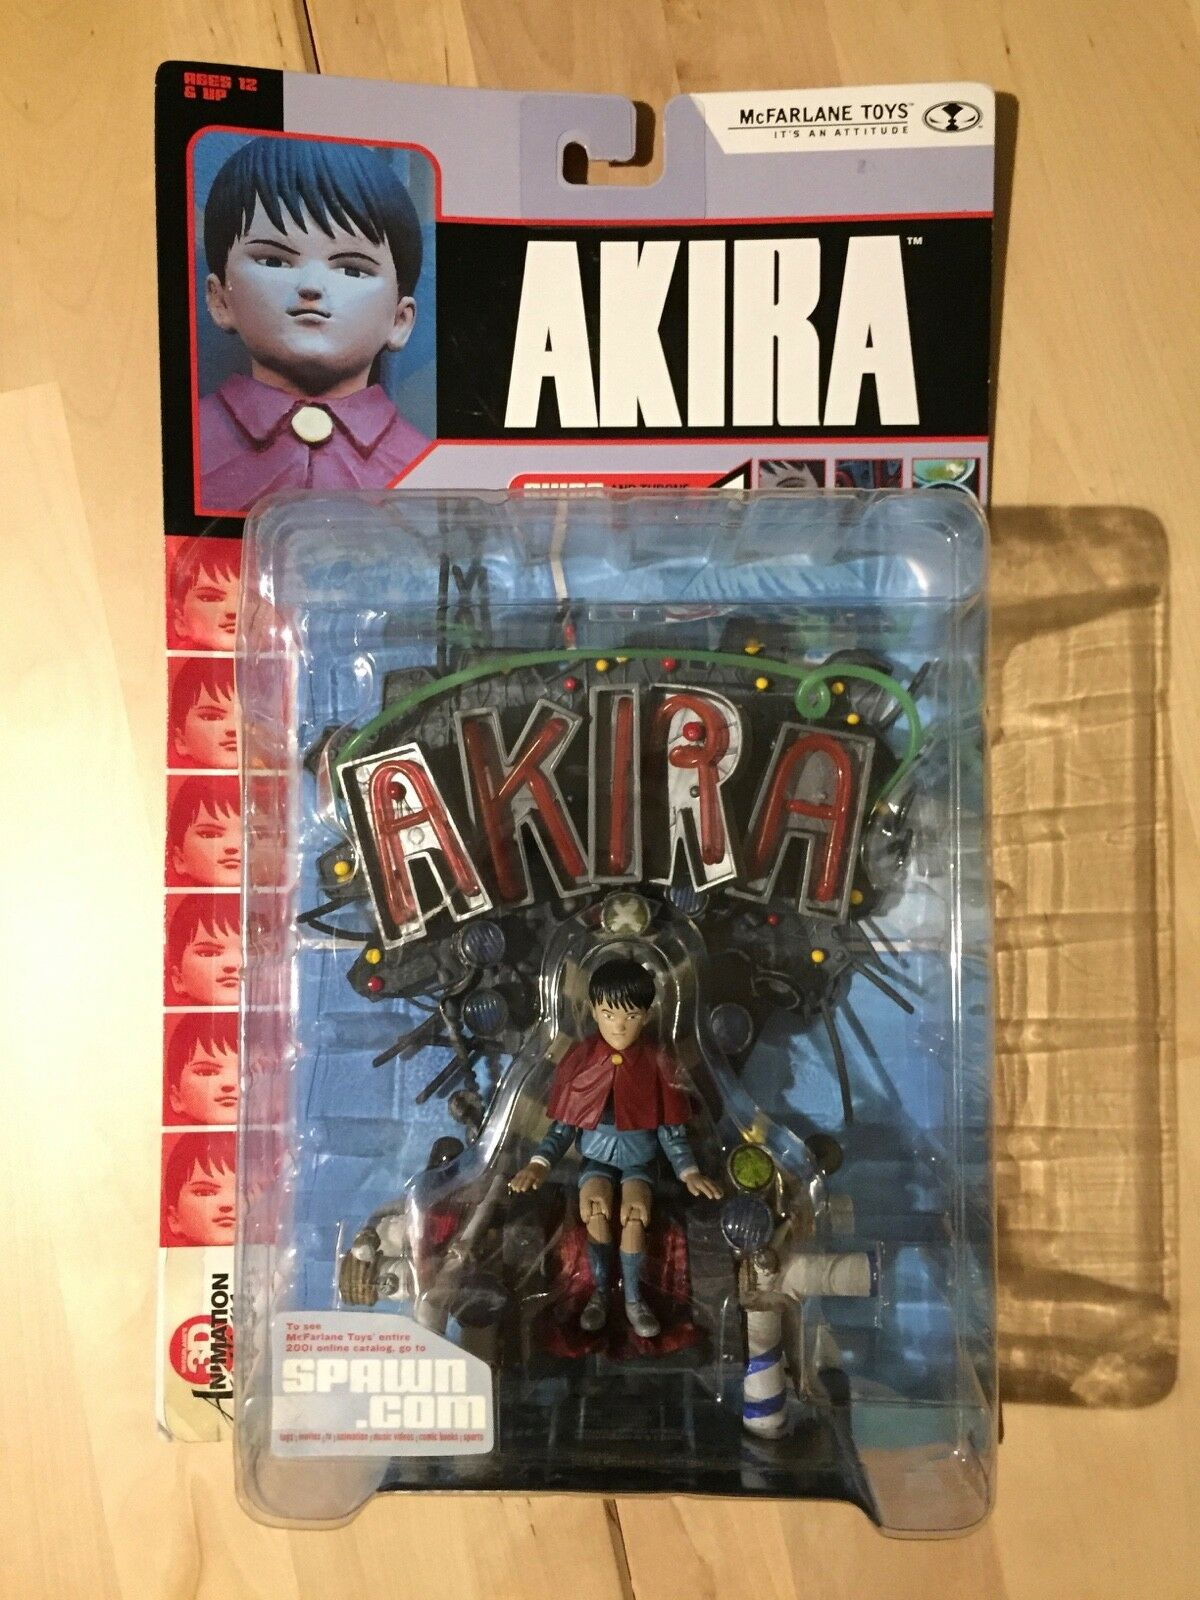 MCFARLANE 3D ANIMATION FROM JAPAN SERIES 2  AKIRA  ACTION FIGURE MOC 2001 THRONE